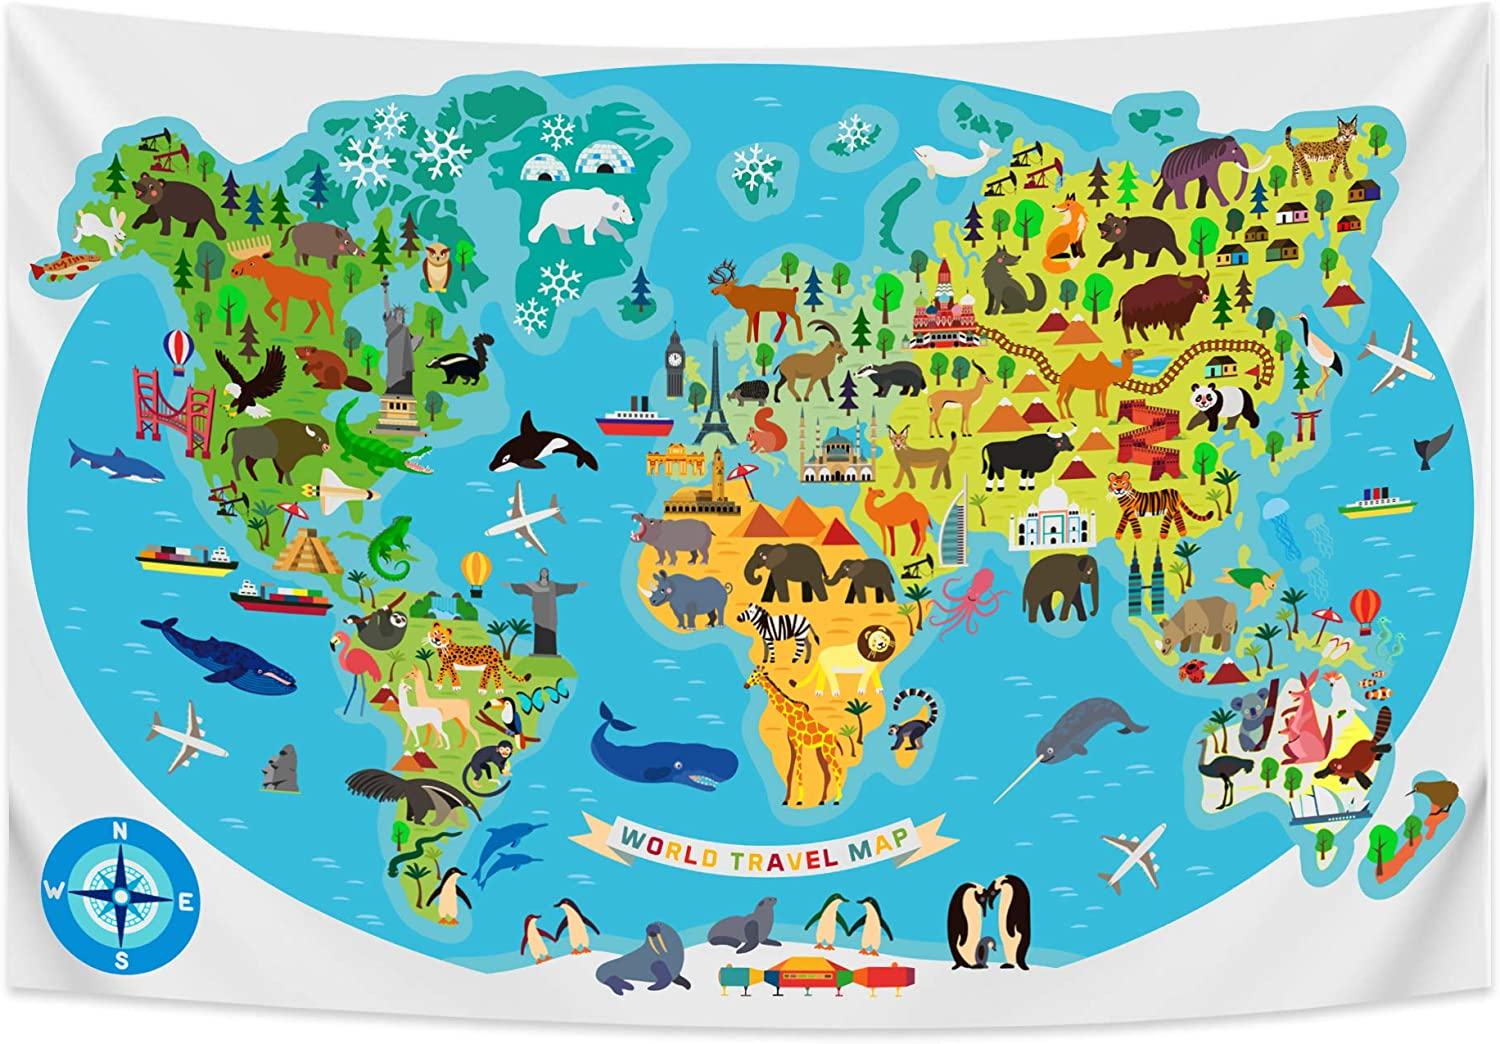 World Map Tapestry for Children - Large Travel Map for Kids - Cute and Colorful Wall Decor with Animals and Landmarks - Educational Learning Aid for Geography Lessons, Classroom, School, Homeschool